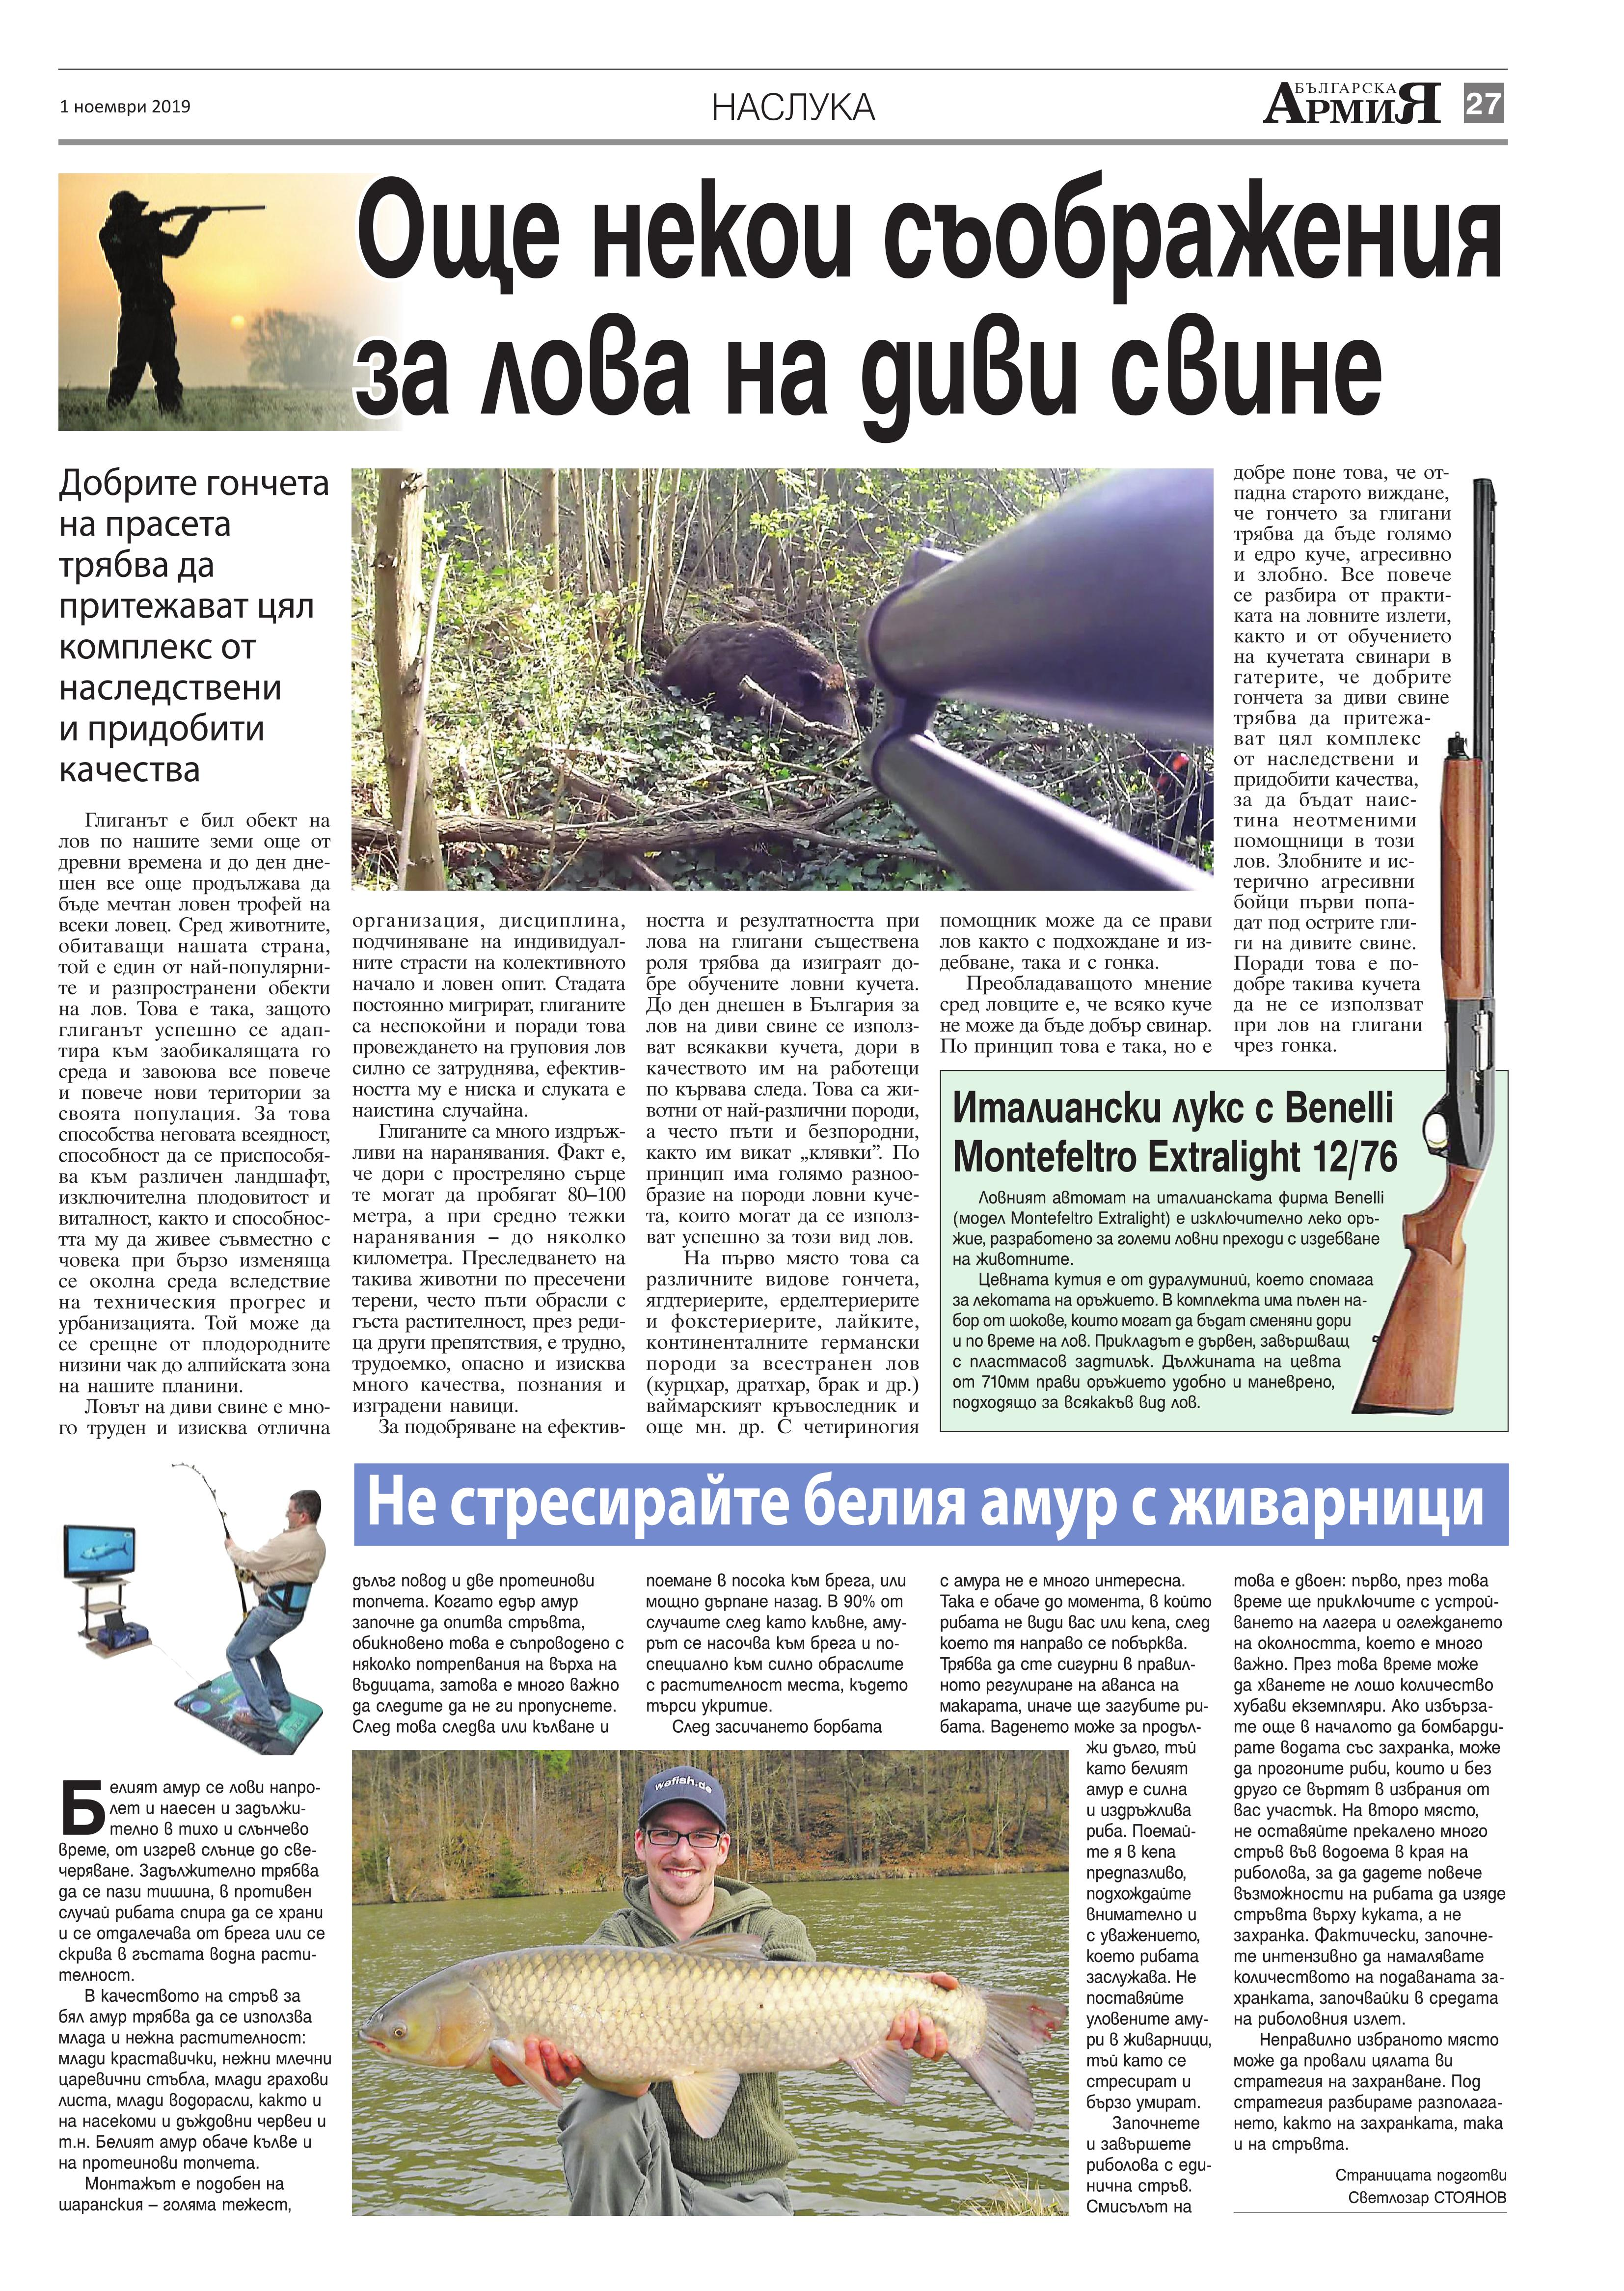 https://www.armymedia.bg/wp-content/uploads/2015/06/27.page1_-95.jpg